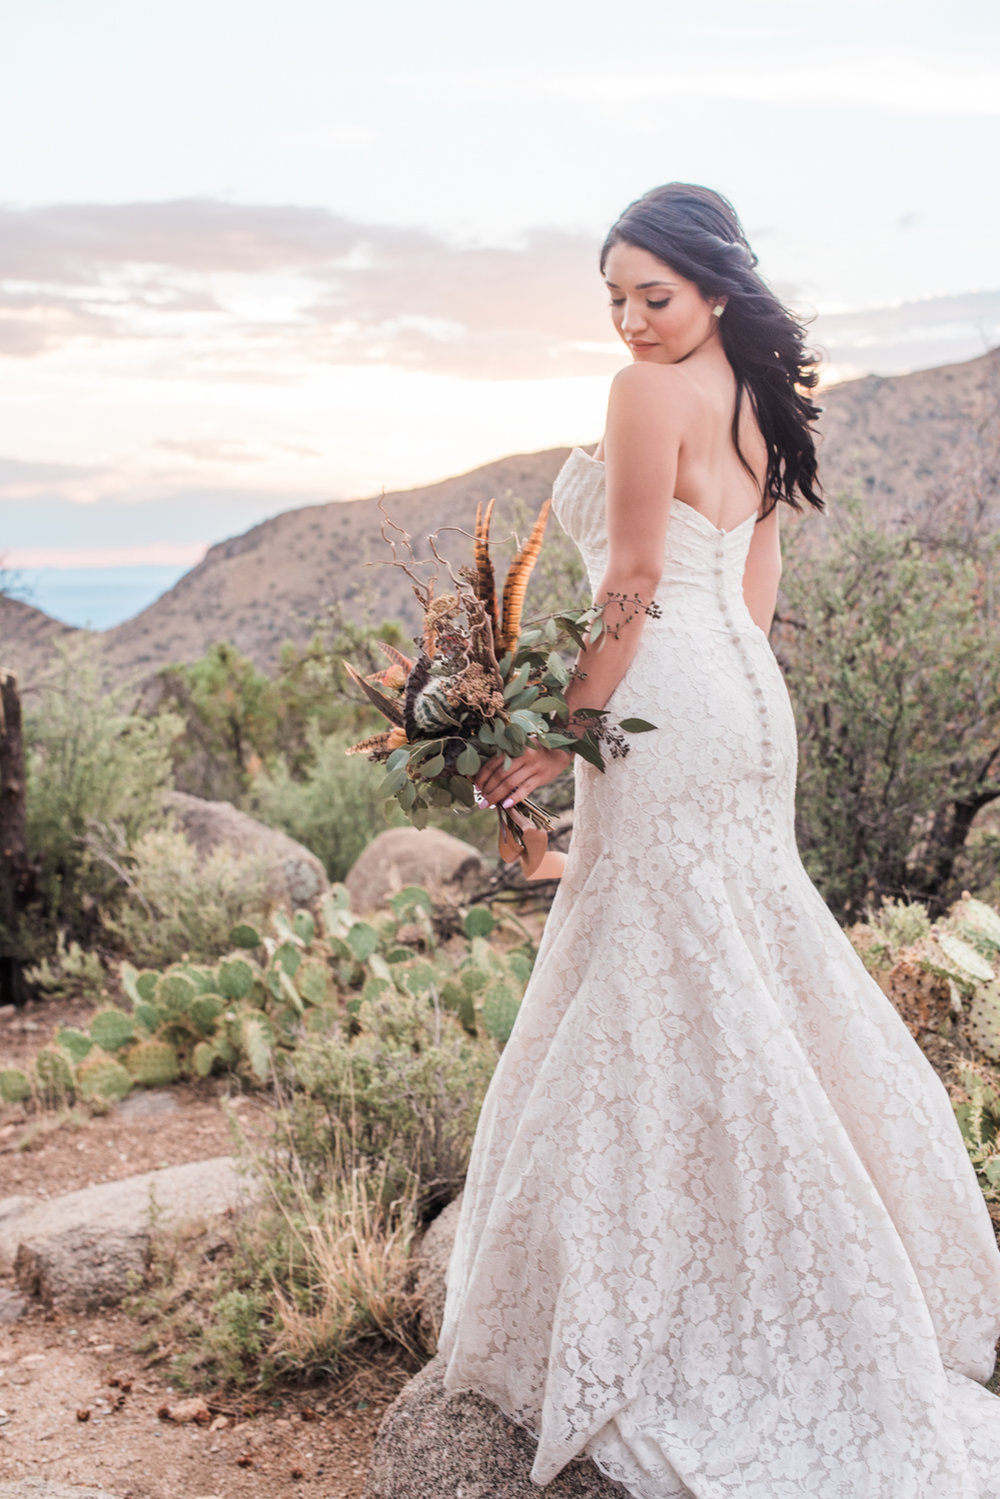 Published inprint & online - Albuquerque New Mexico Perfect Wedding Guide. Photographer: Briana Nicole Photography. Sandia Foothills, New Mexico.